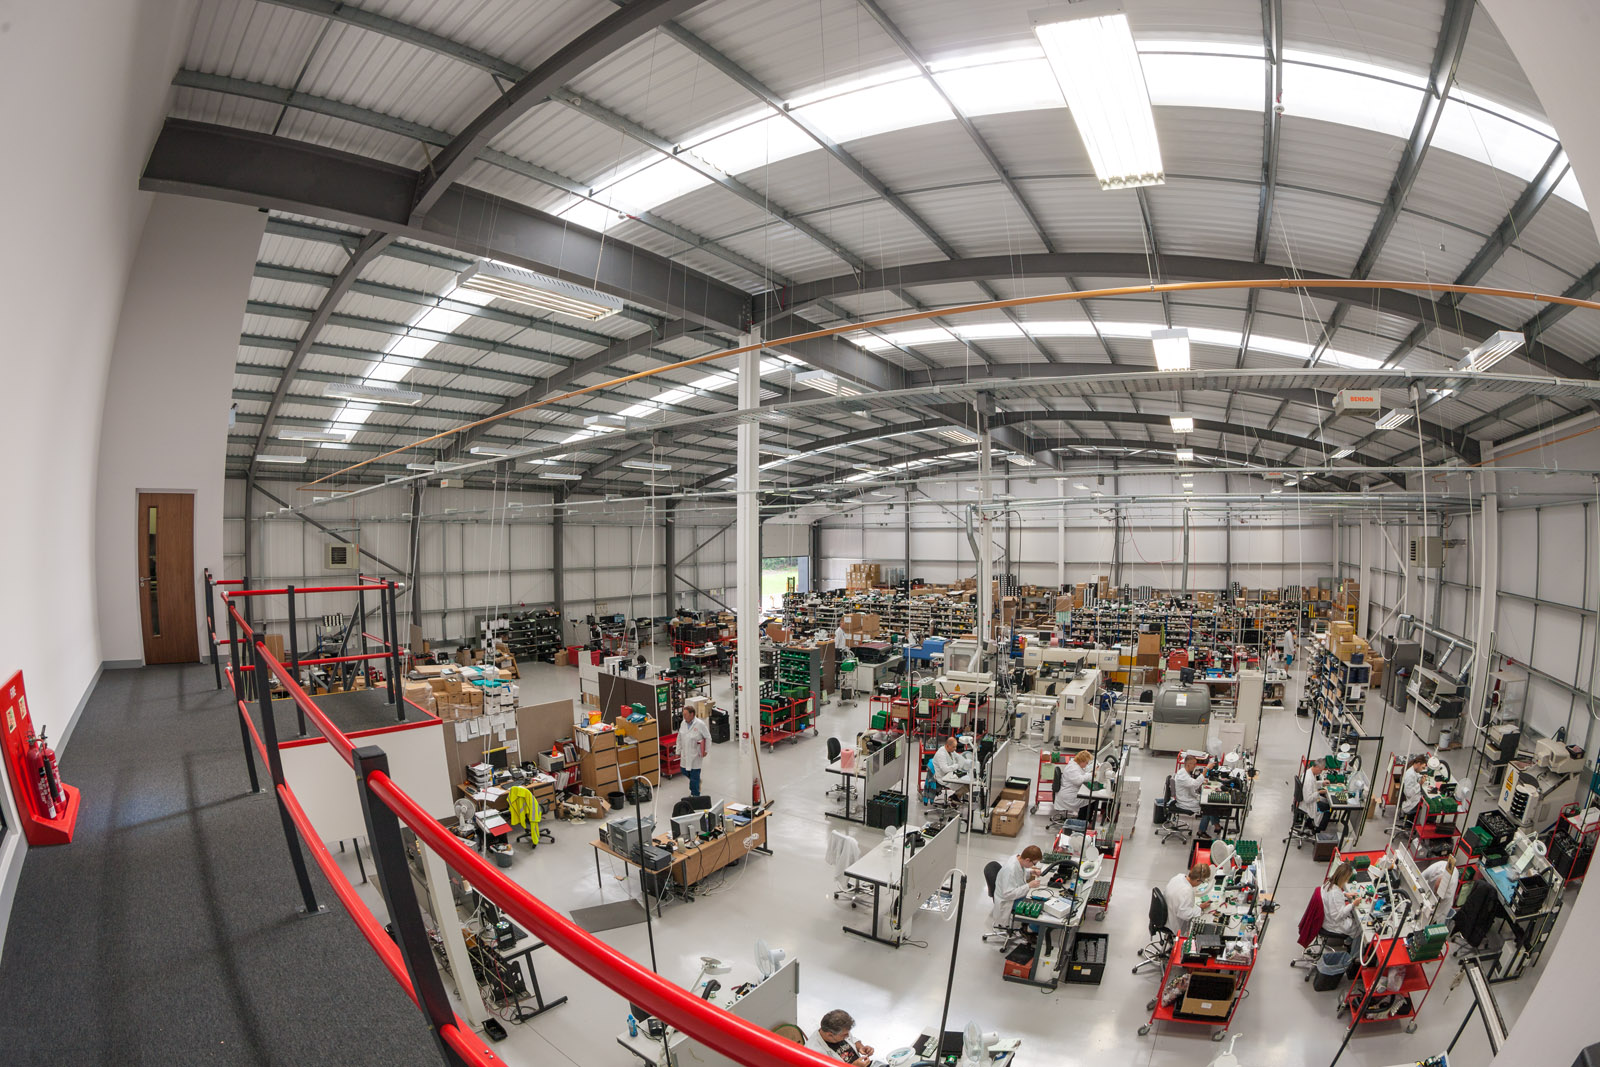 View of factory, a wide view, fish-eye lens